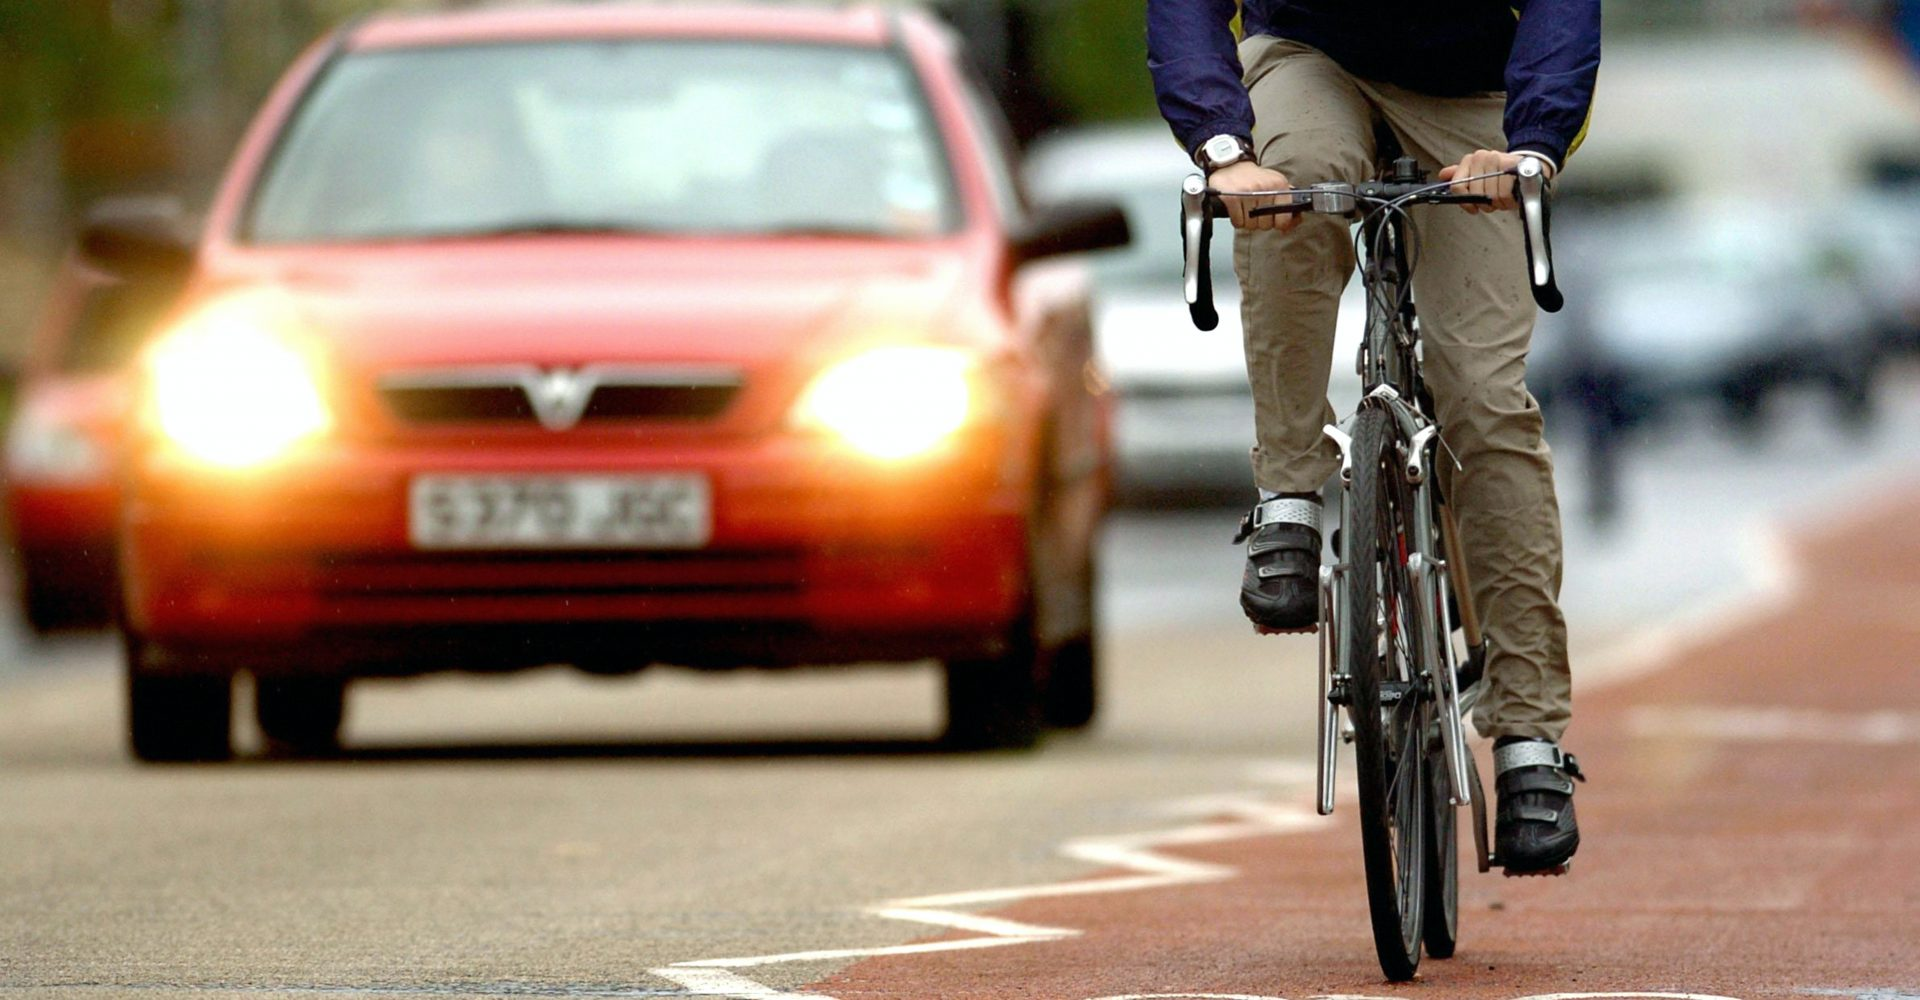 Automatic £130 fines for minor driving offences on the way, says RAC